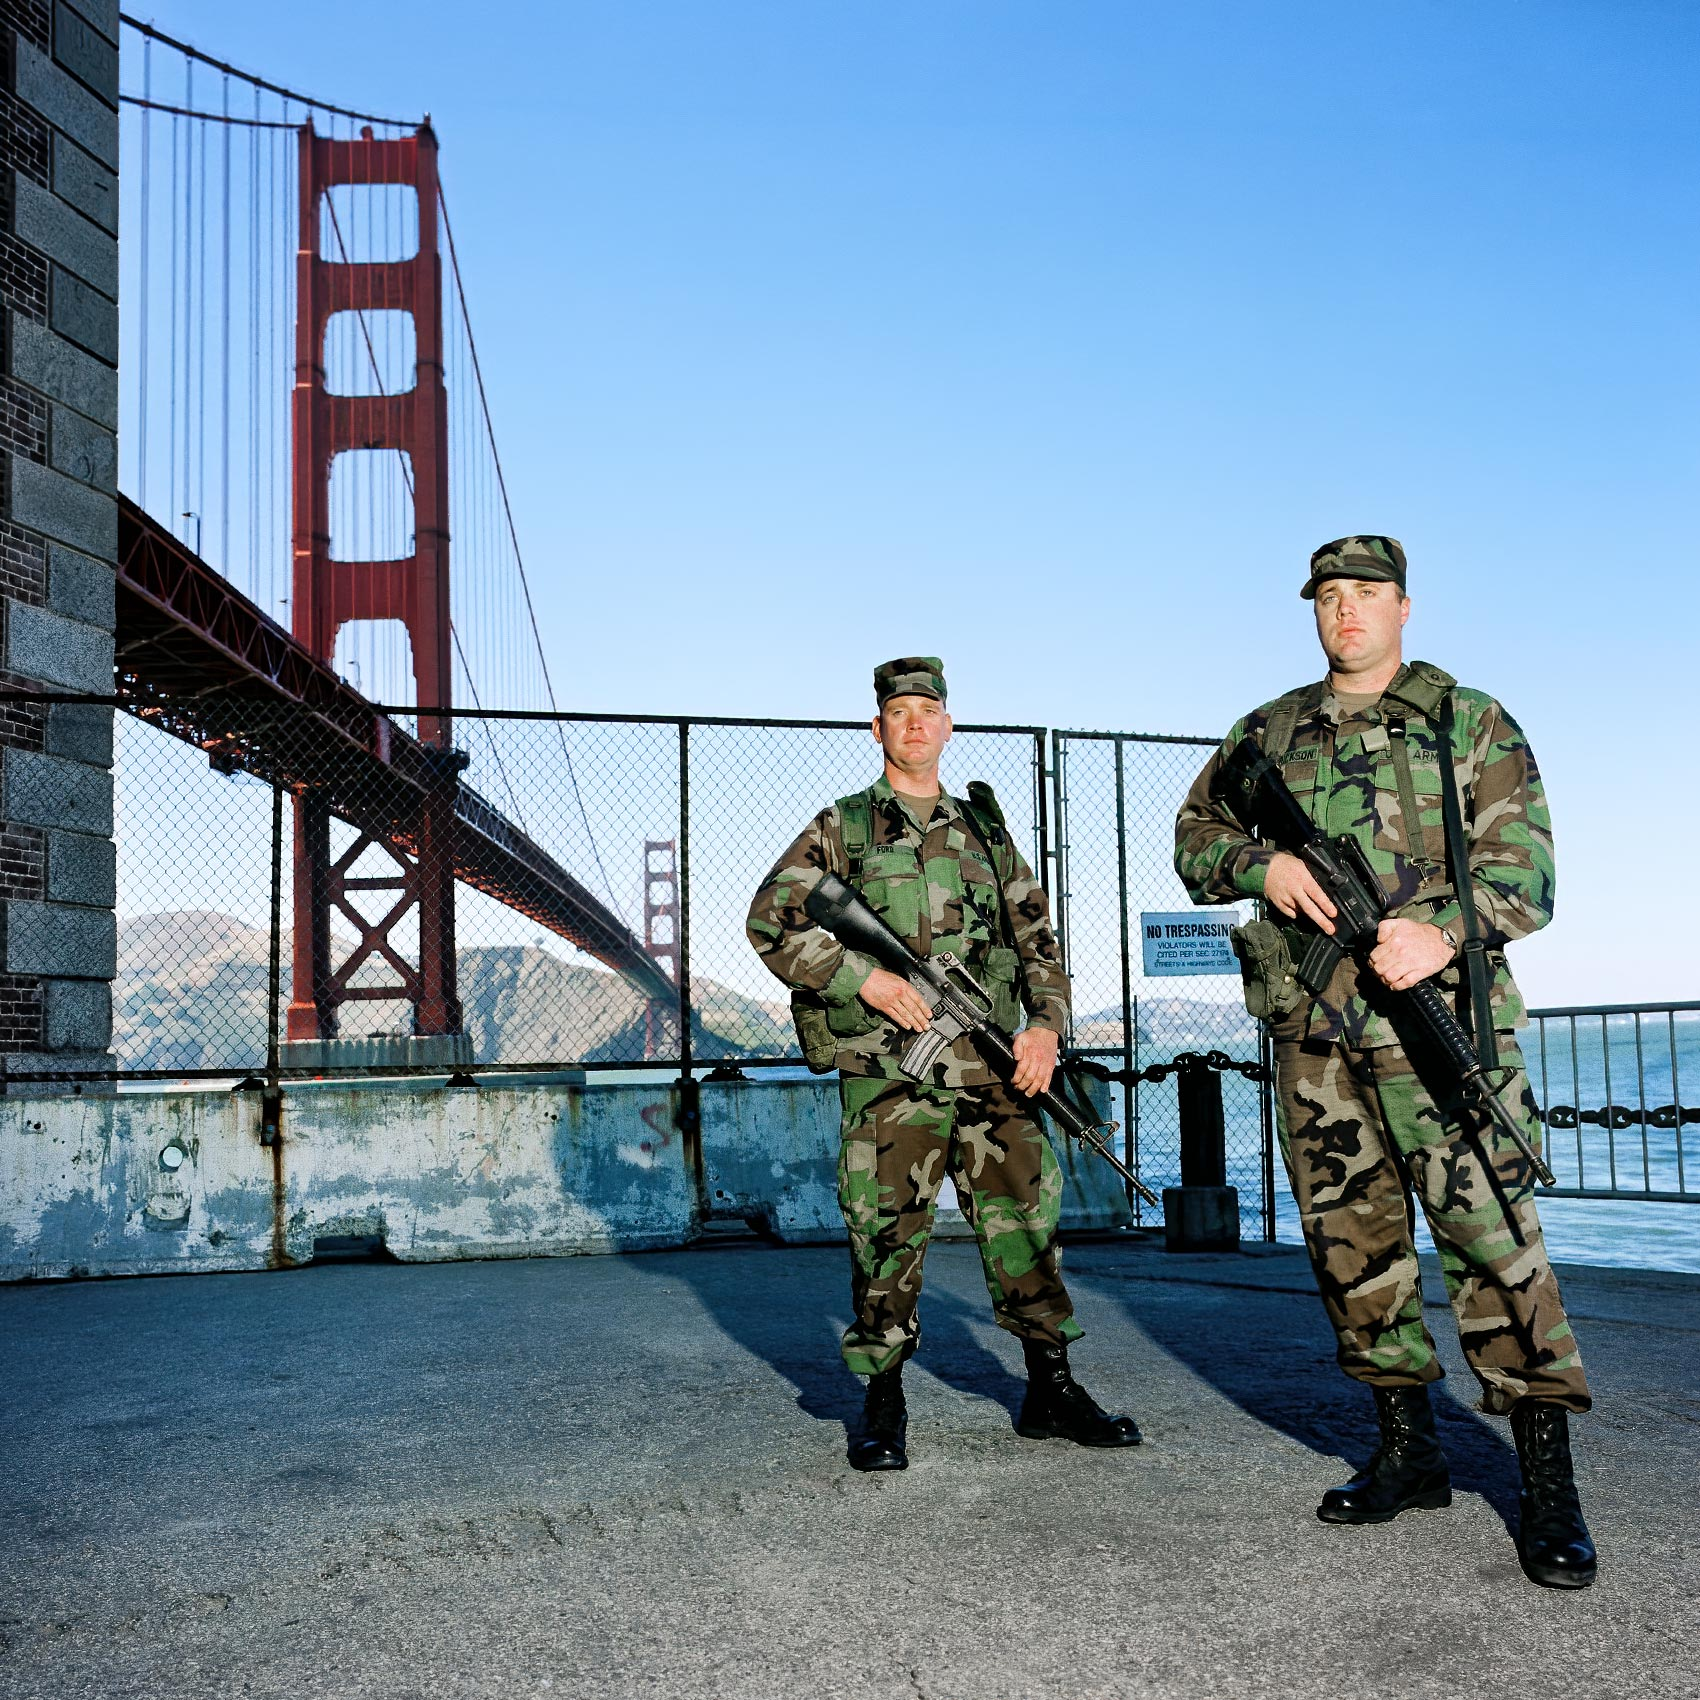 two-US-soldiers-guard-the-golden-gate-bridge-in-sanfrancisco-california-copy-2